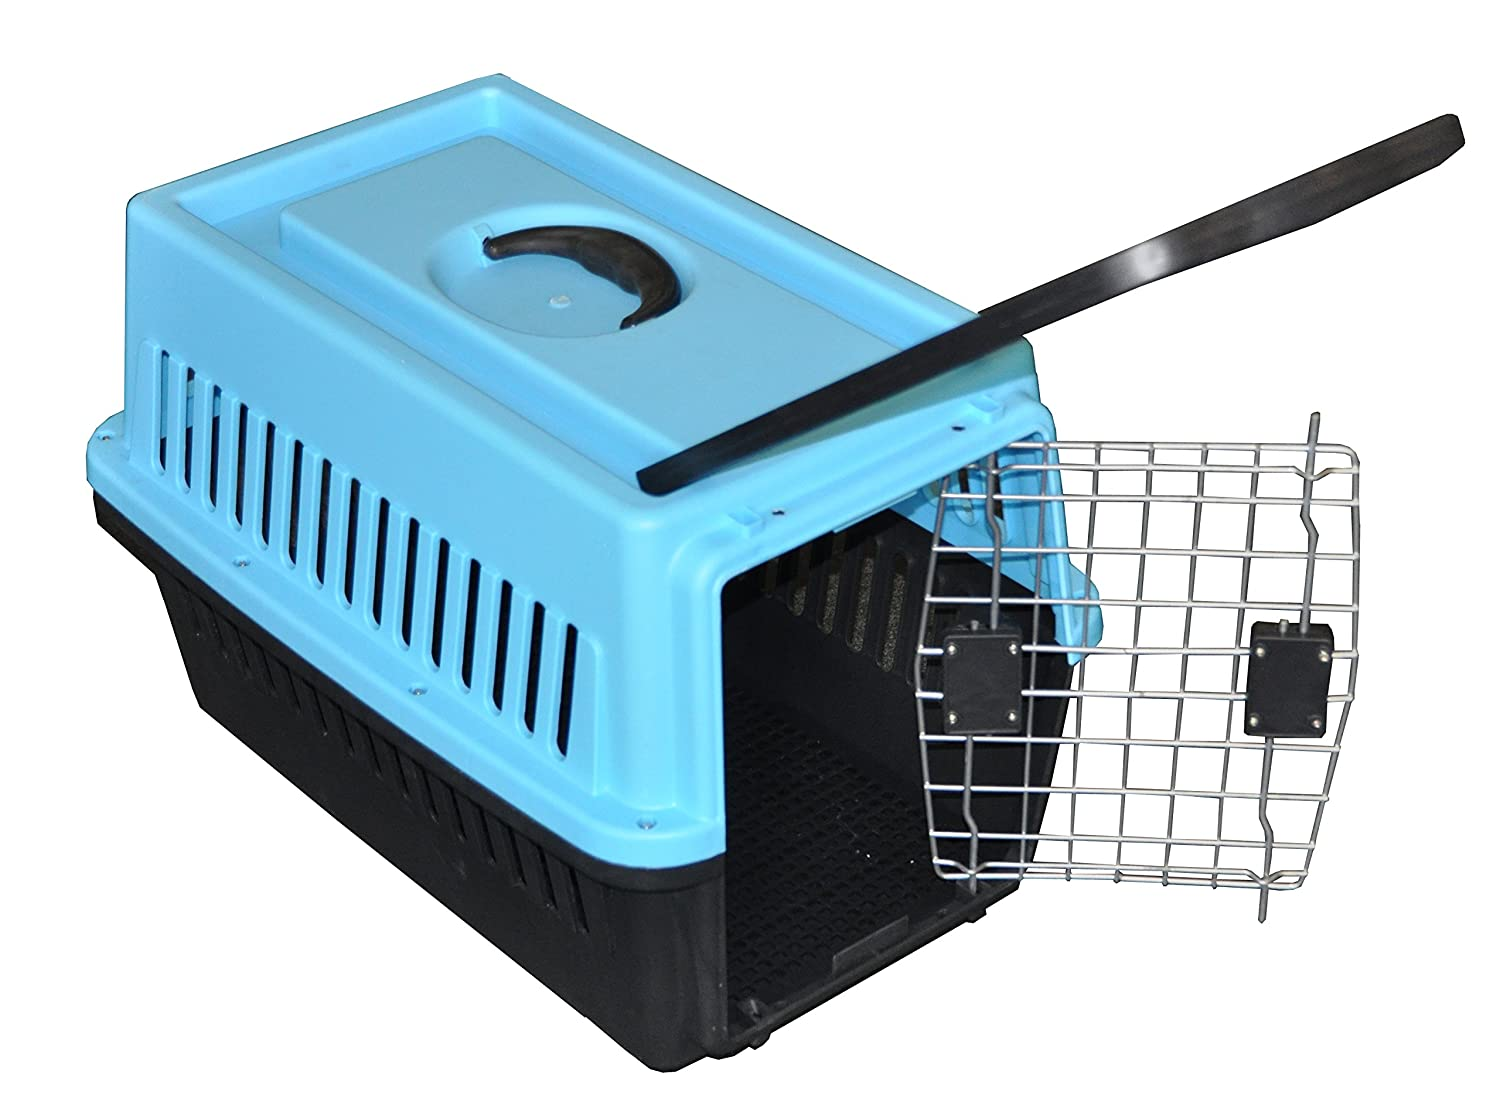 Cool Runners 106648 Plastic, Dog or Cat, Pet Crate with Wheels 24  L X 15  W X 18  H